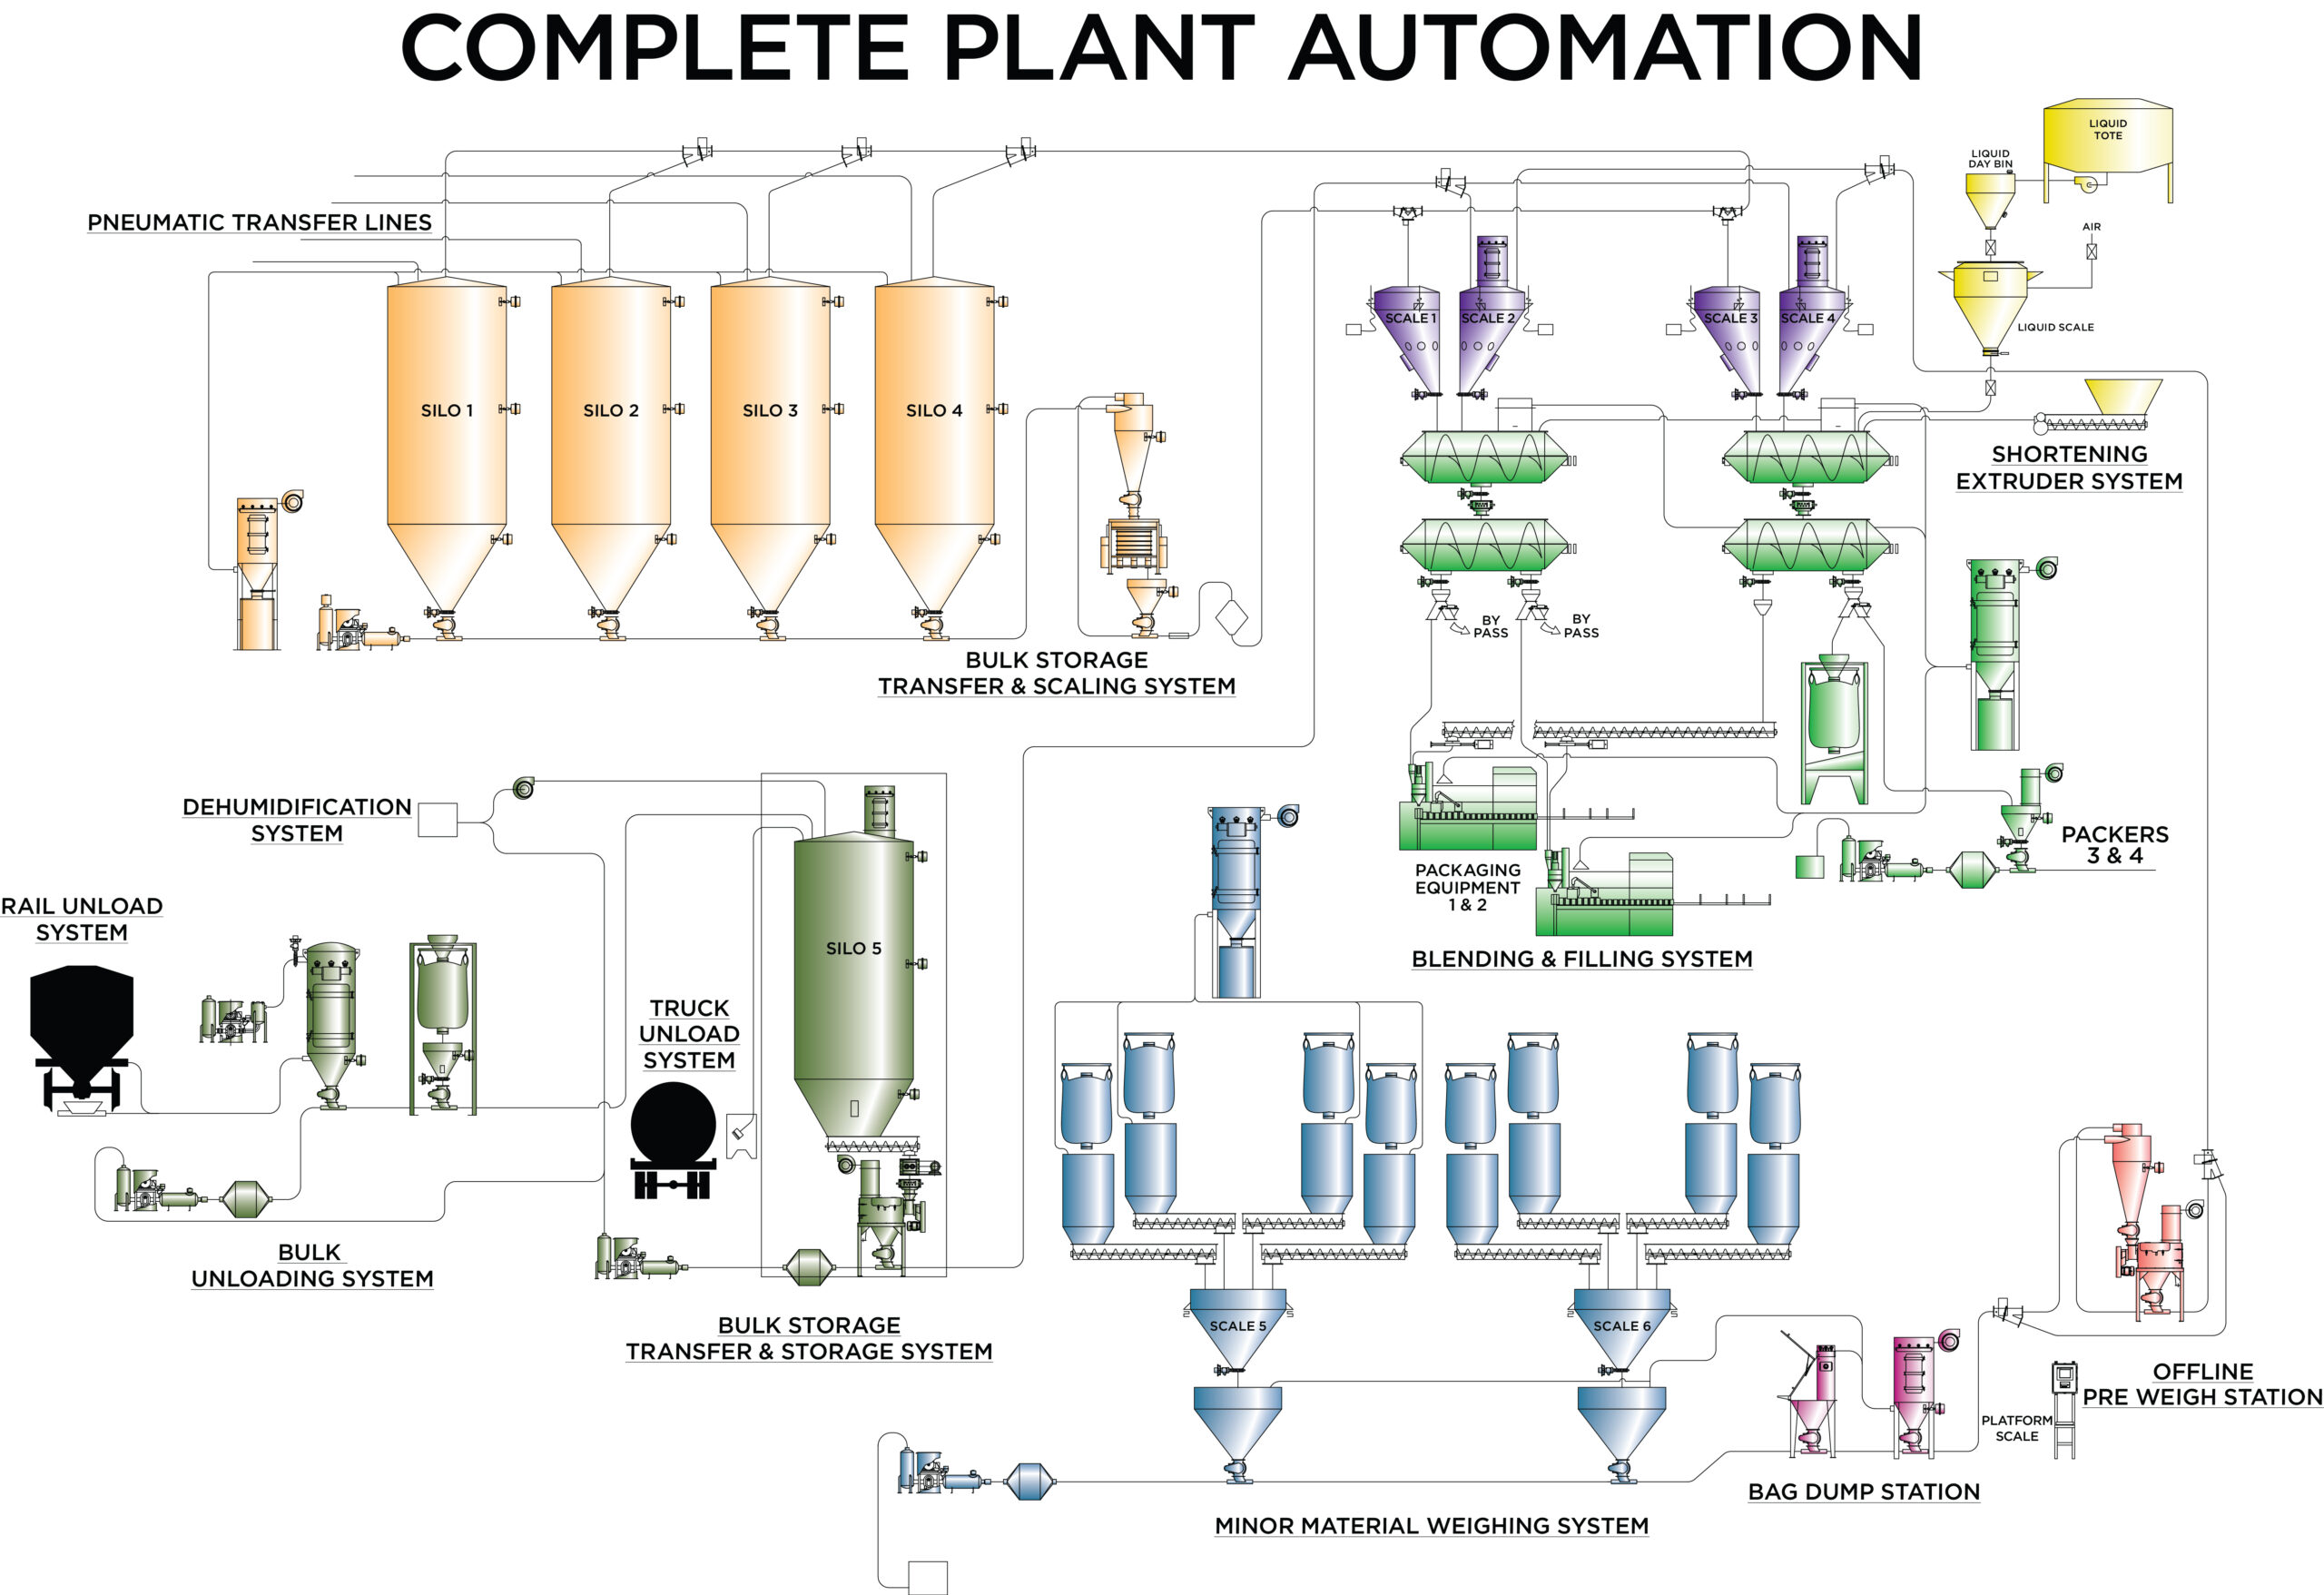 PLANTWIDE AUTOMATION